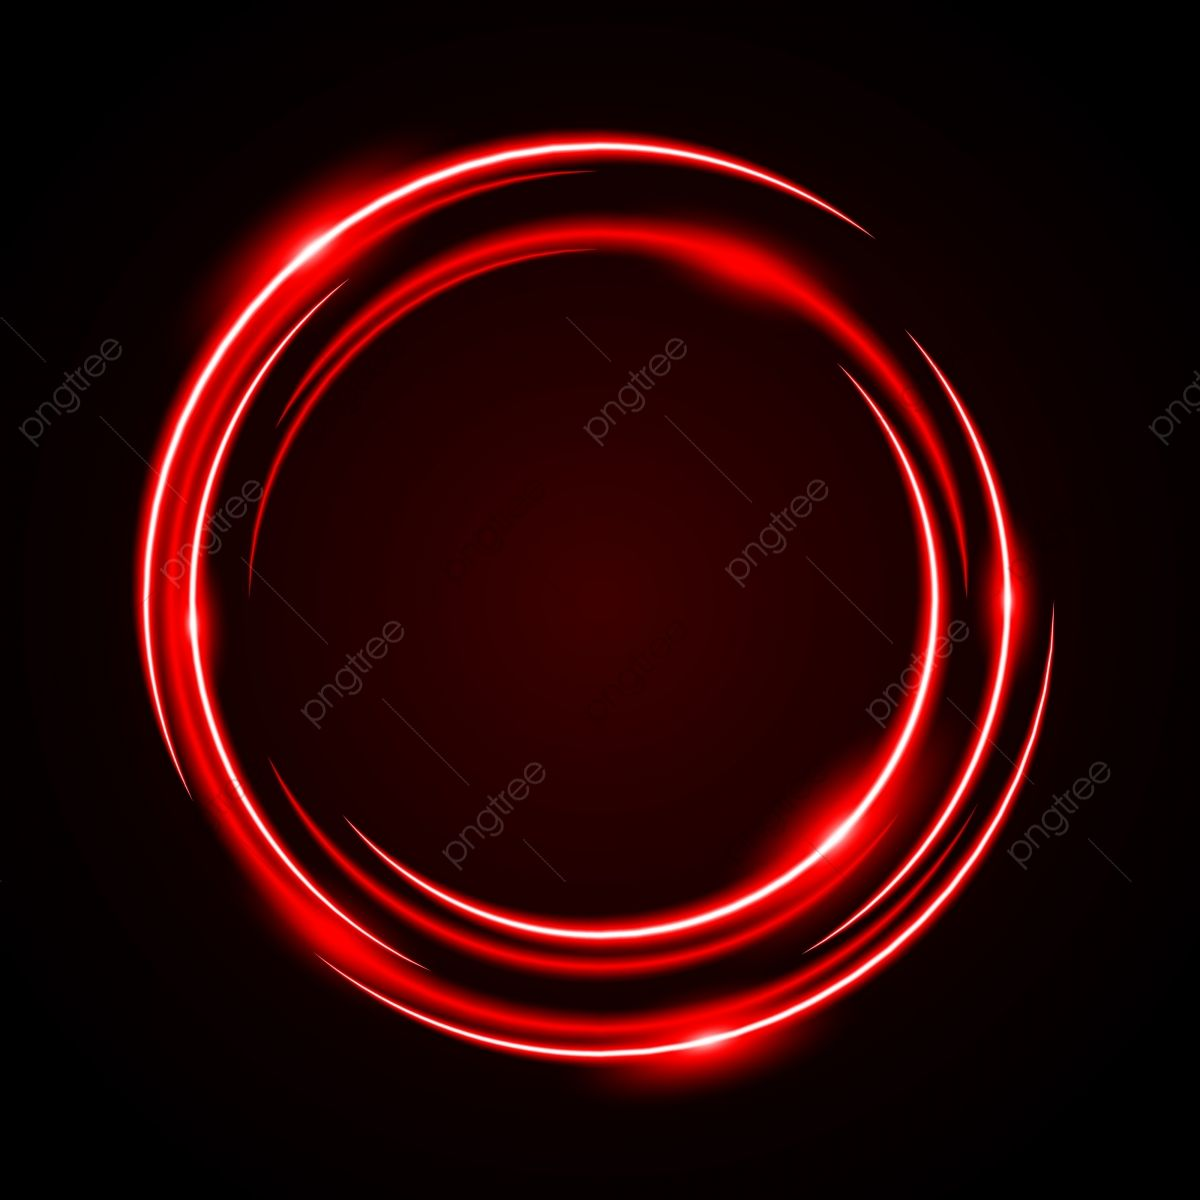 Download This Abstract Circle Neon Light Red Frame Halo Vector Background Abstract Art Transparent Png Or Vector Fi Vector Background Circle Light Red Frame